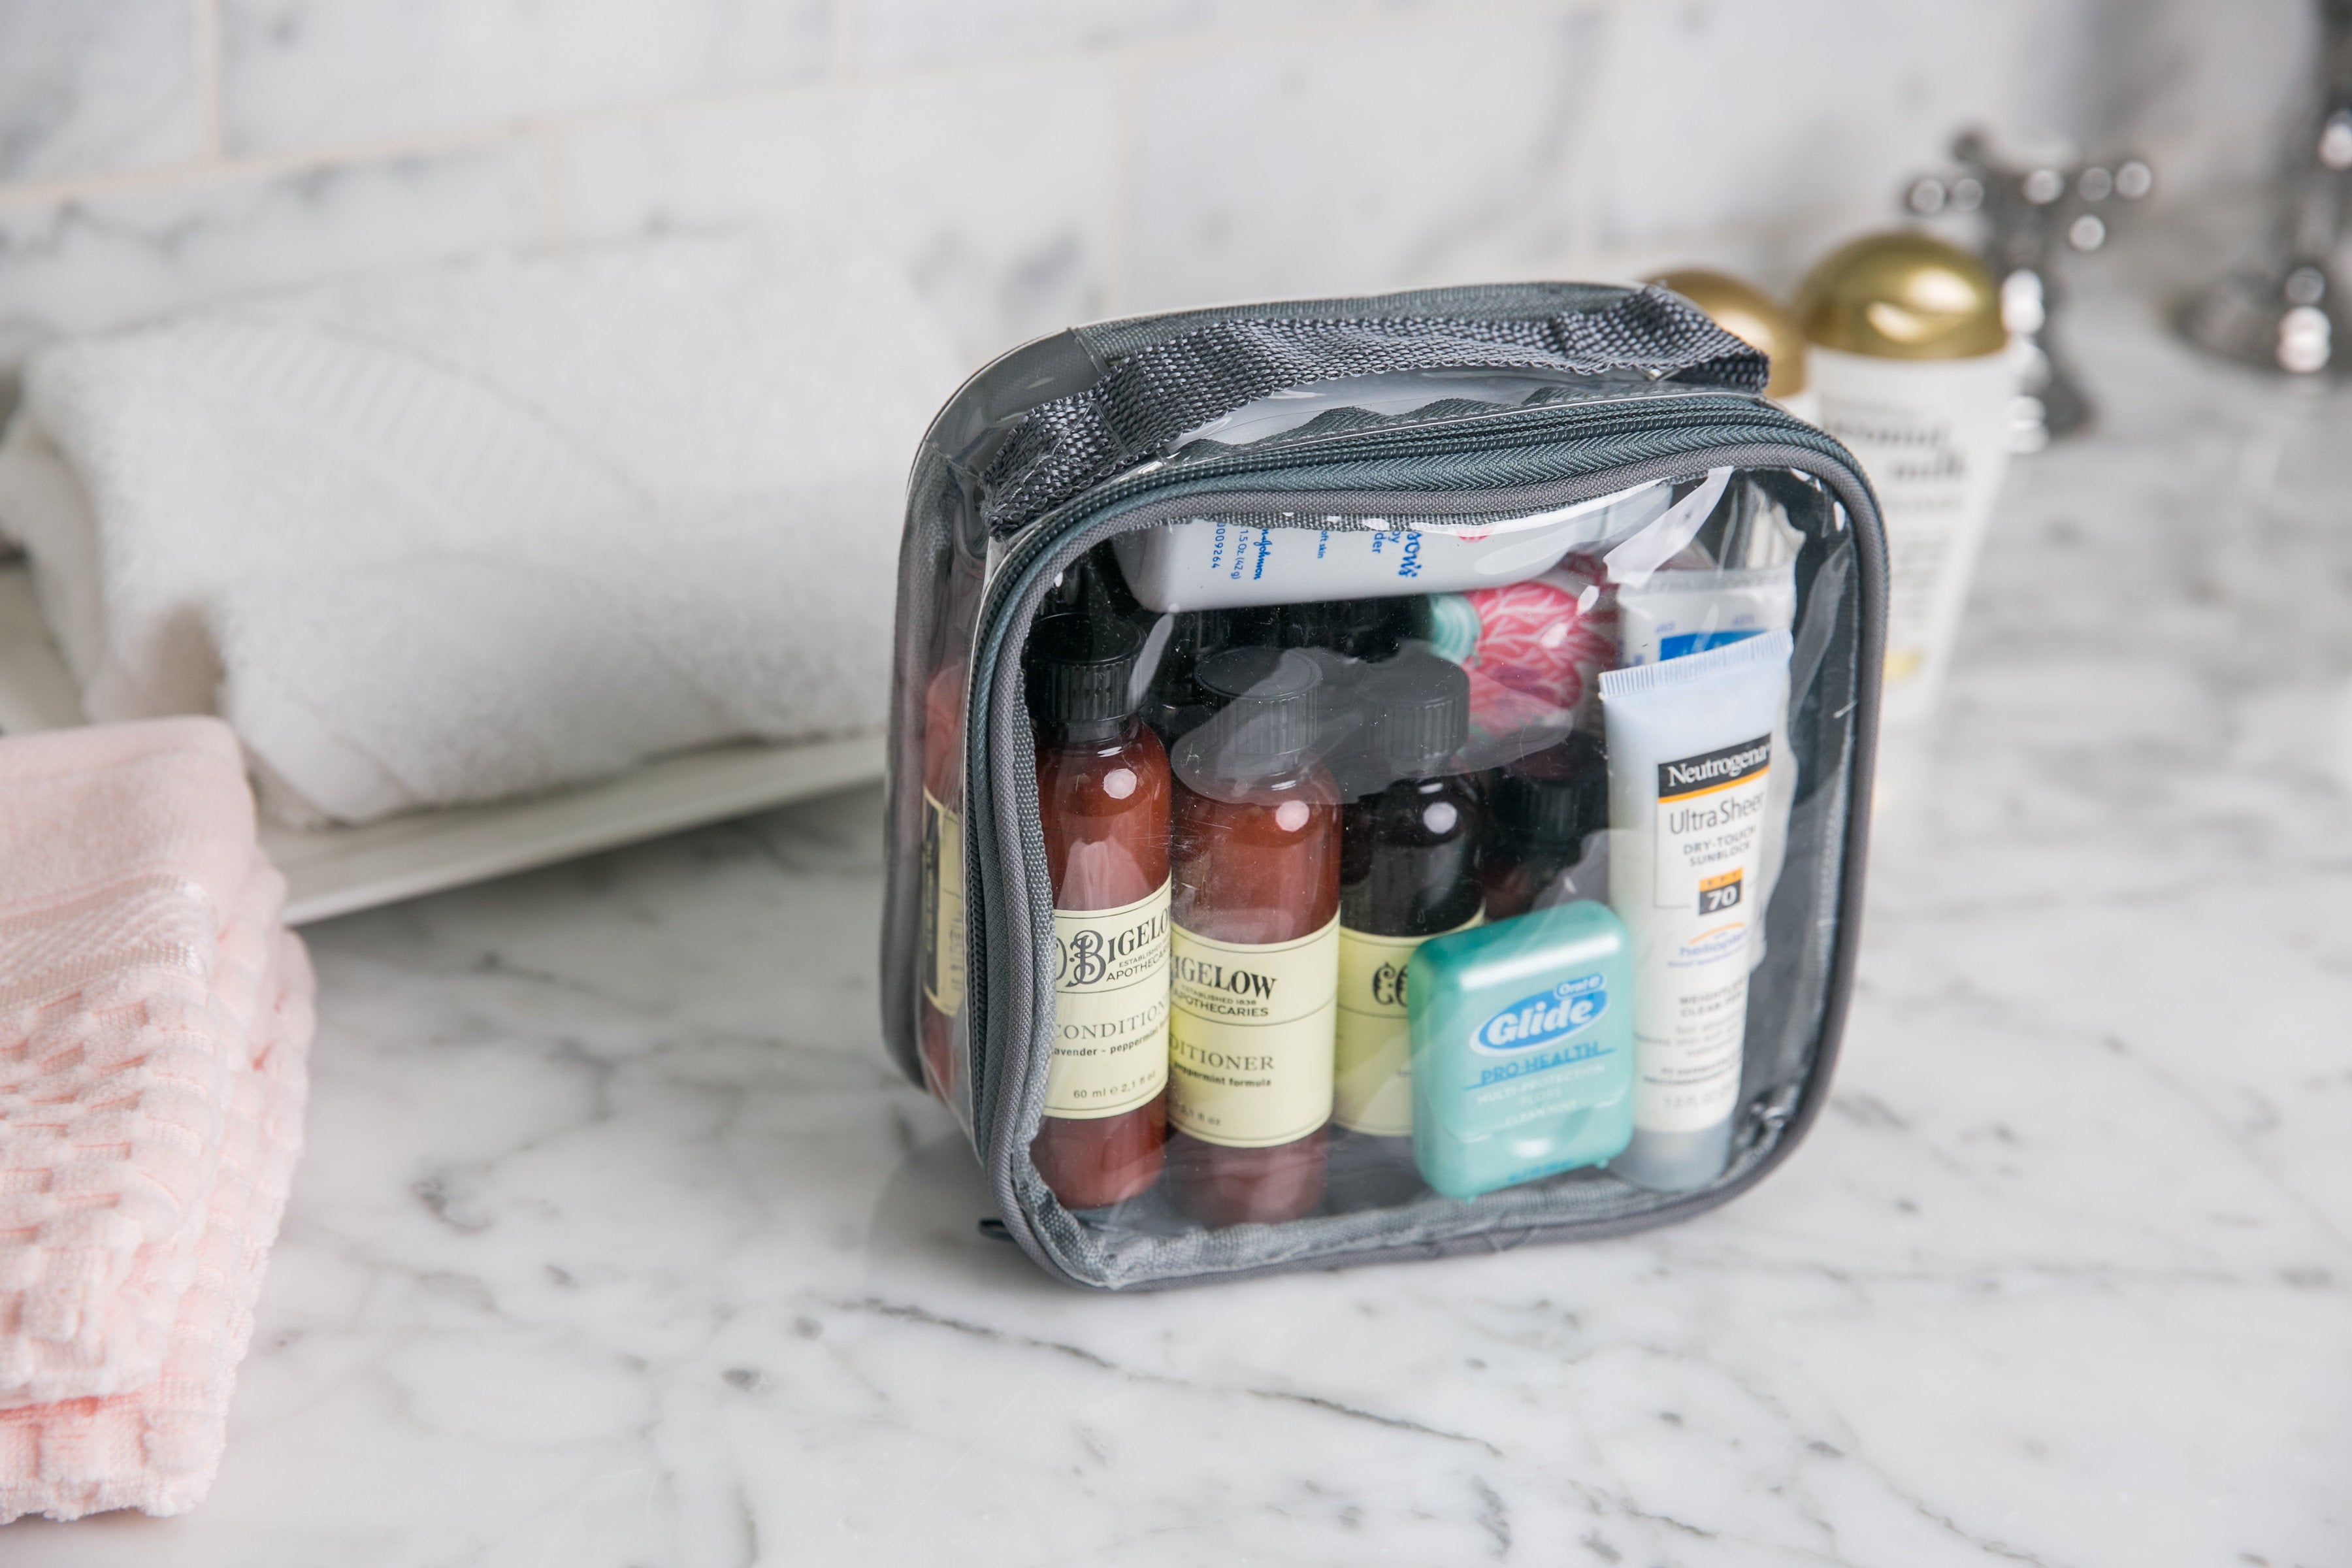 Extra small packing cube with skincare products inside